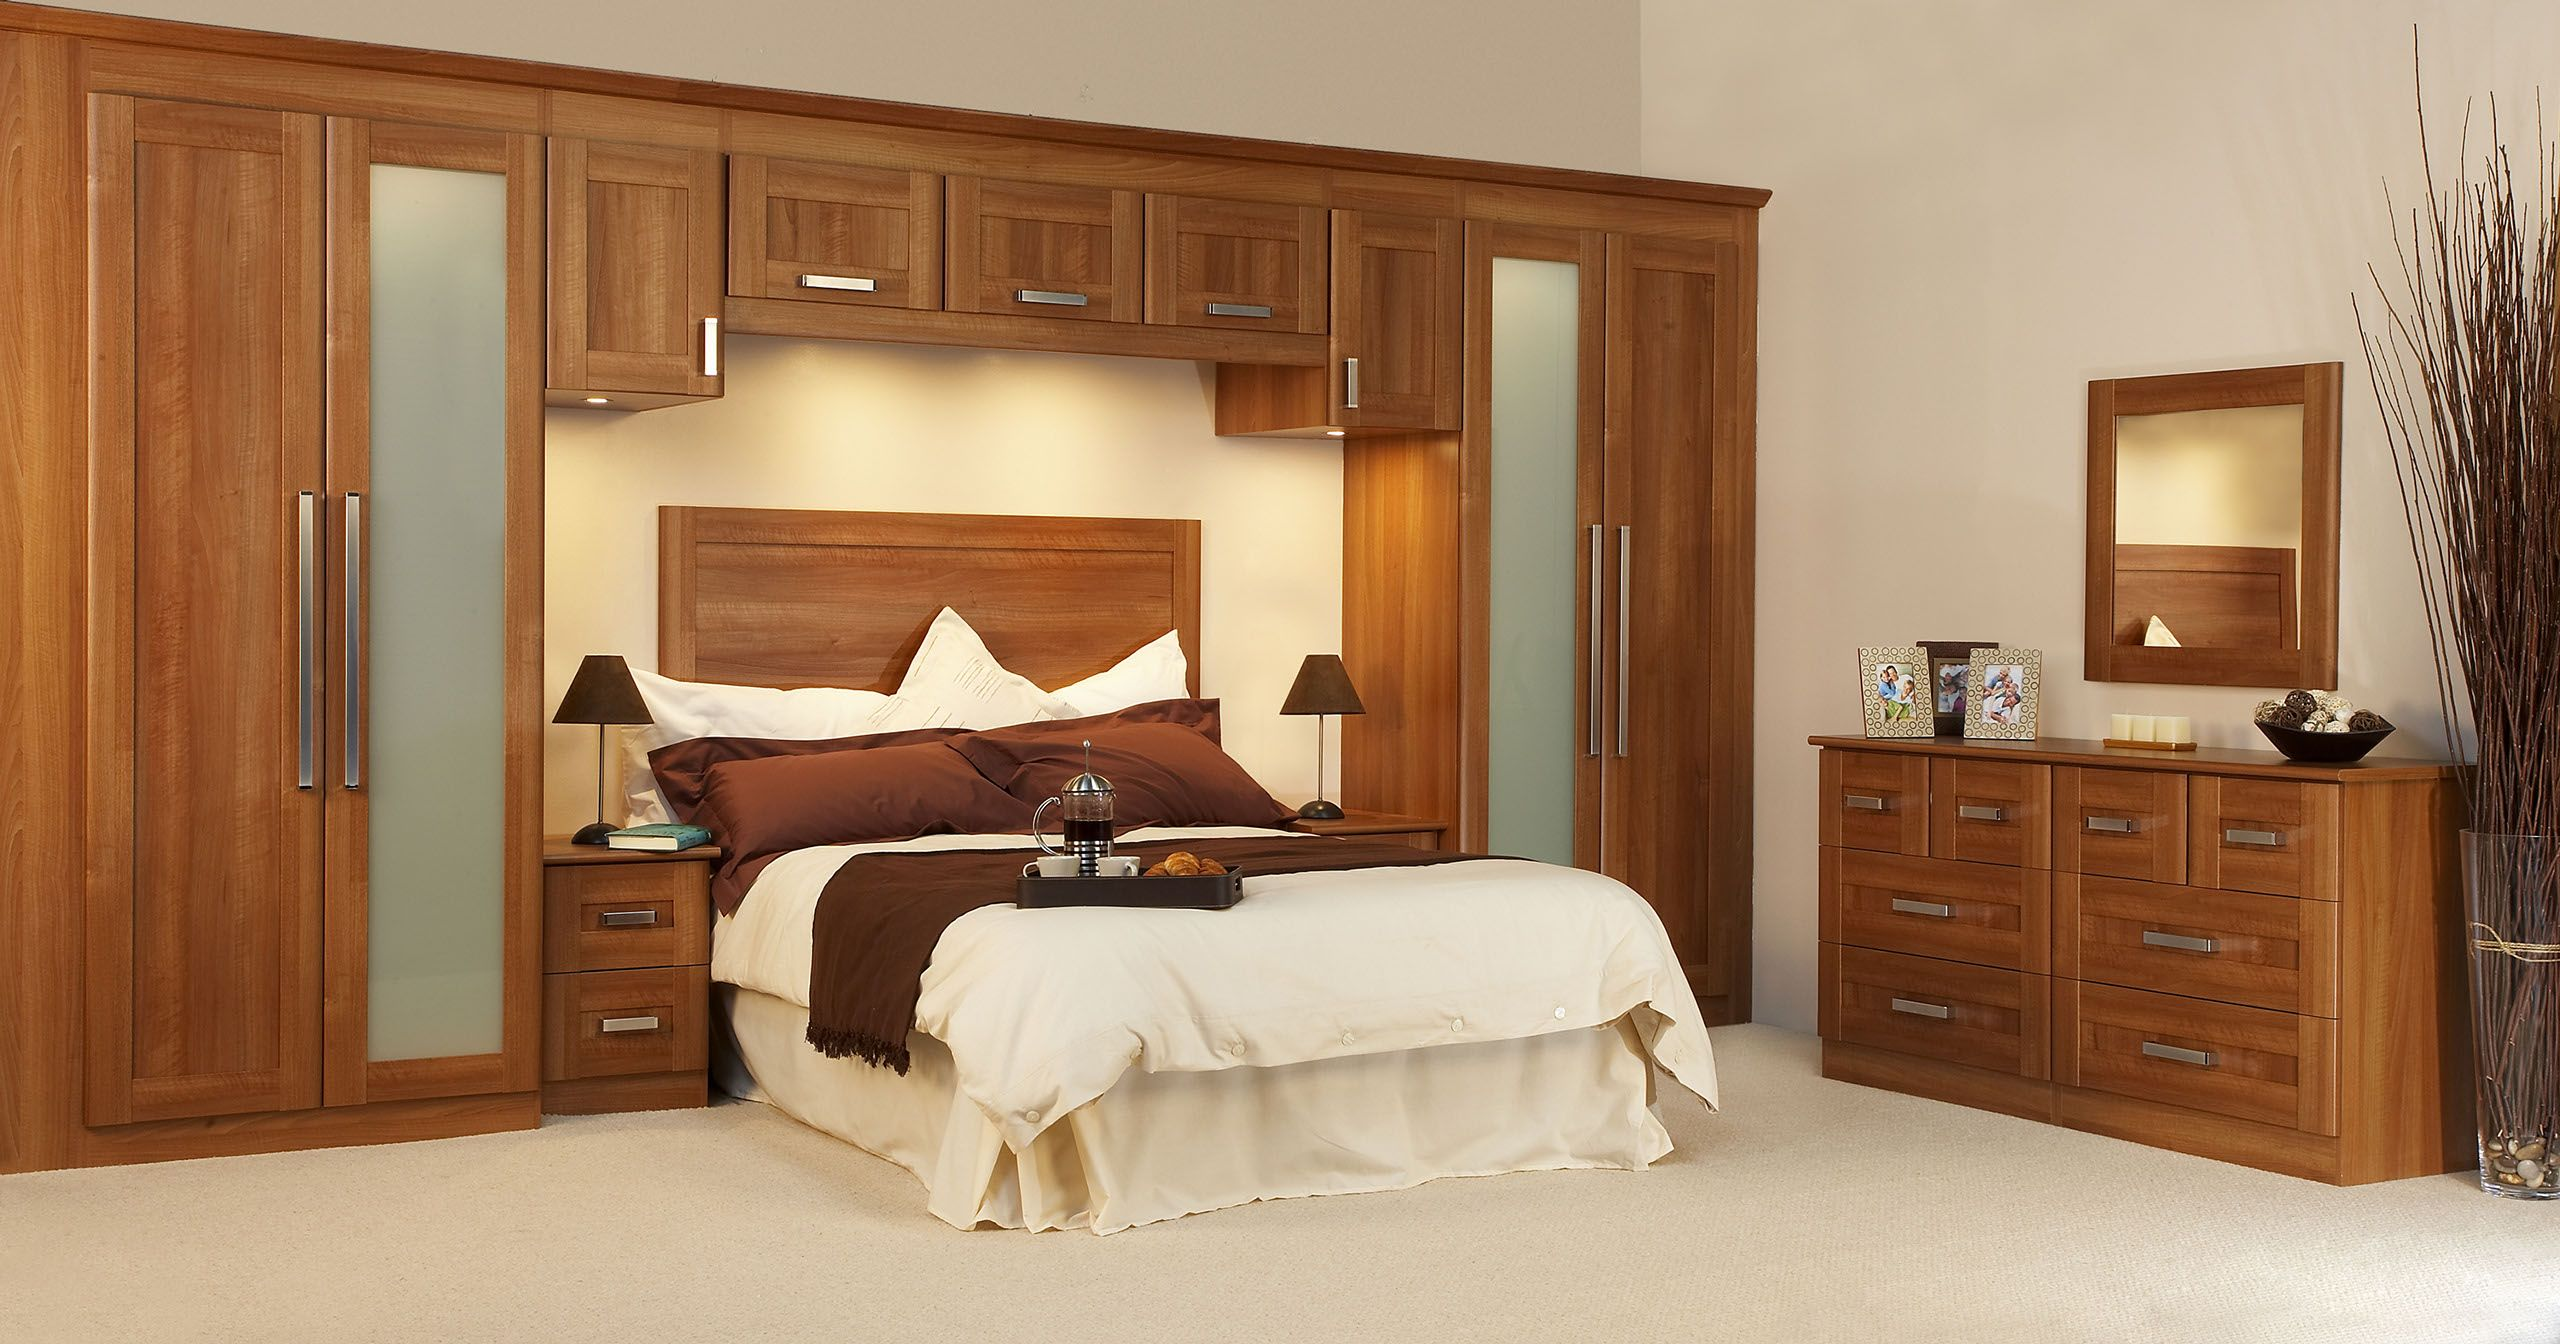 sharps fitted bedrooms google search bedroom